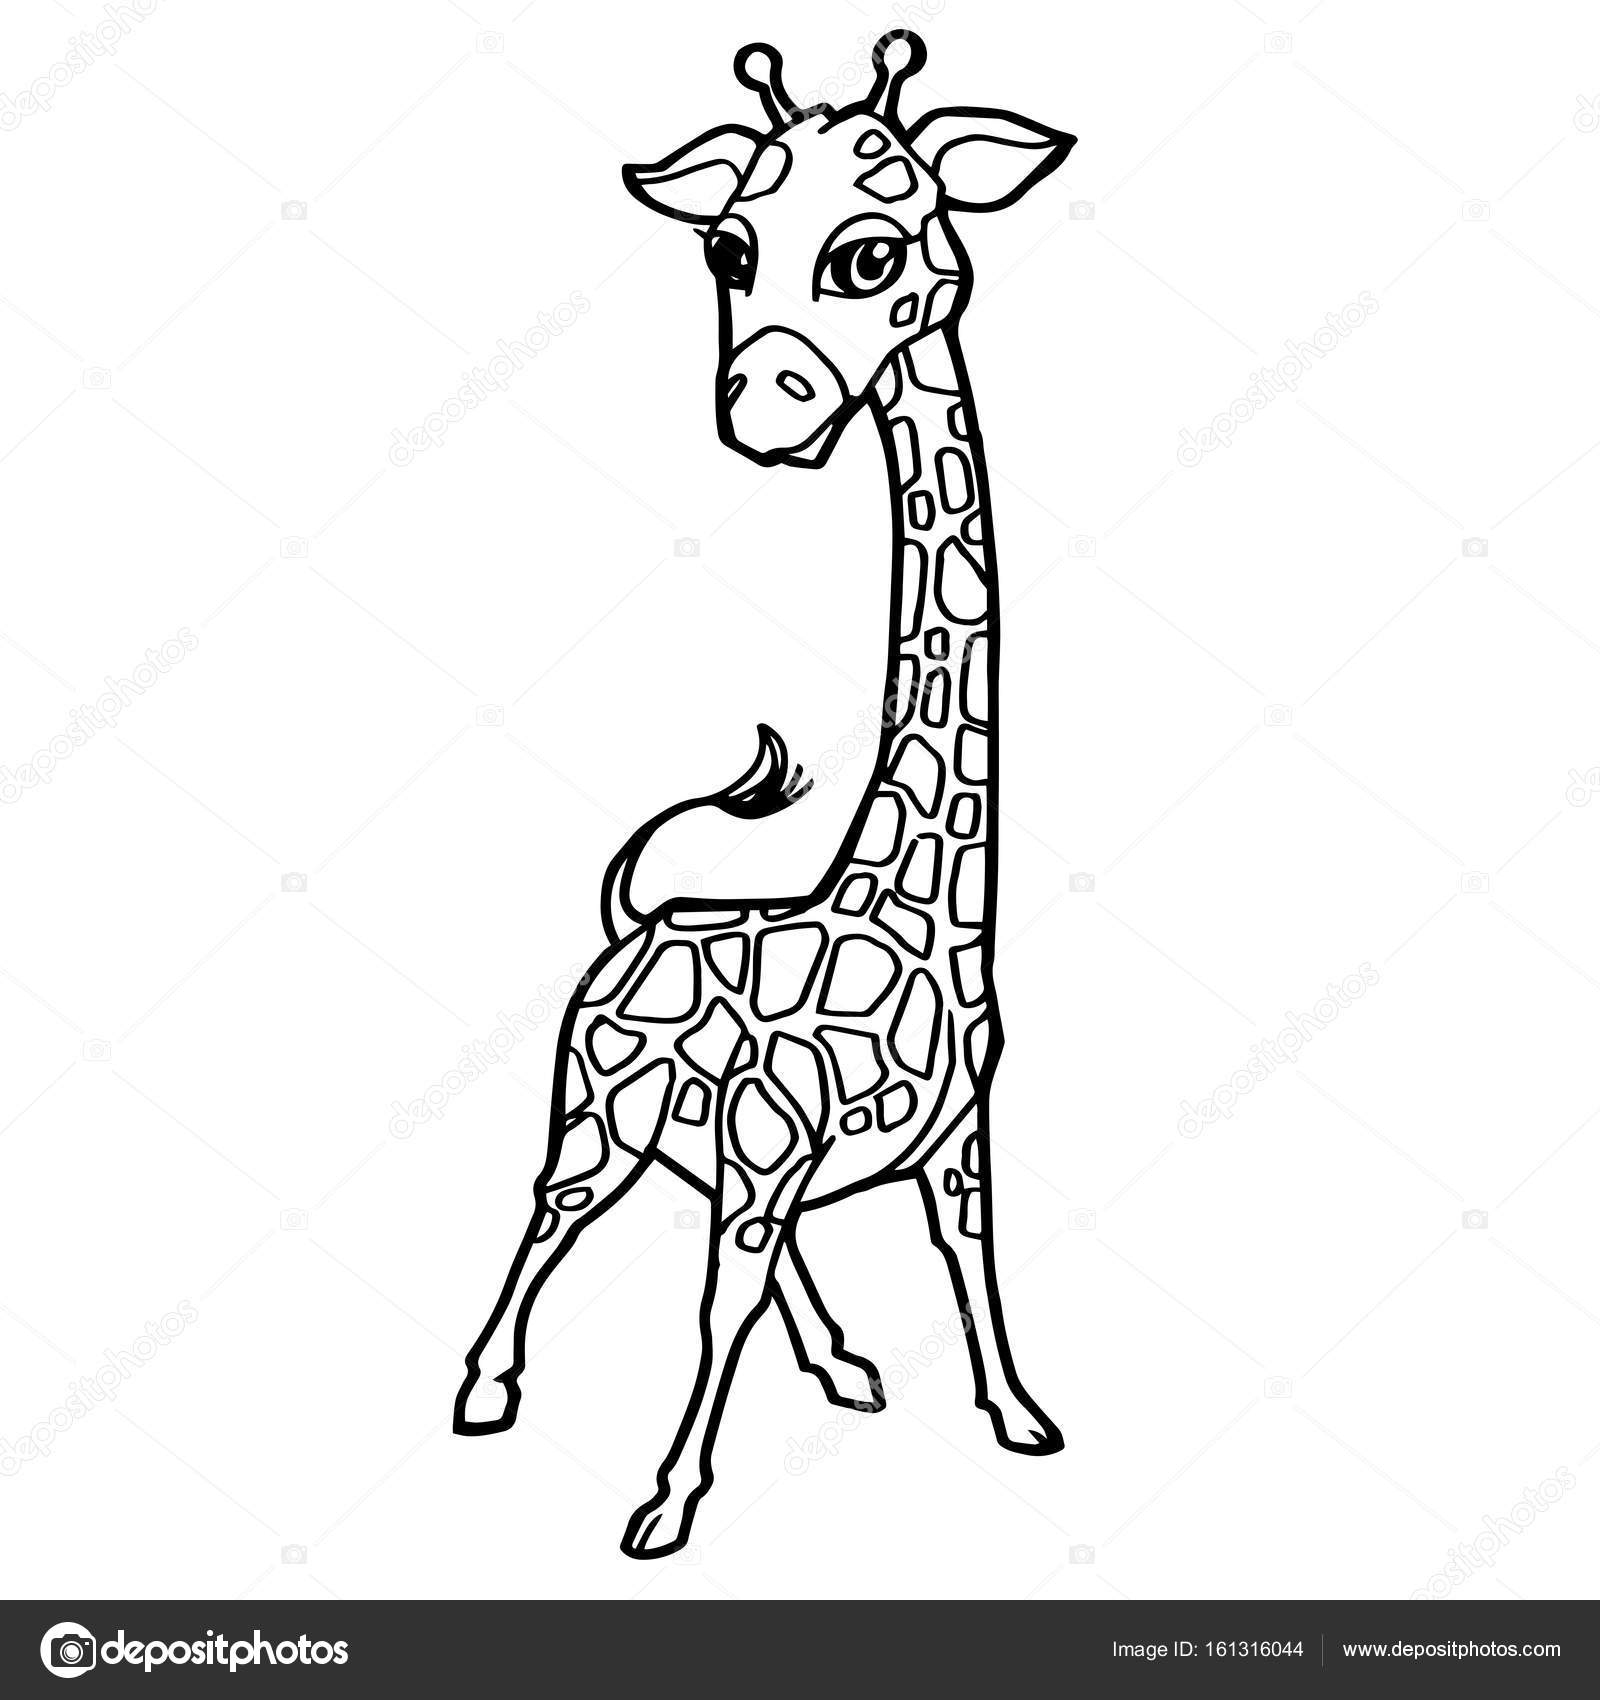 Cartoon Cute Giraffe Coloring Page Vector. U2014 Stock Vector